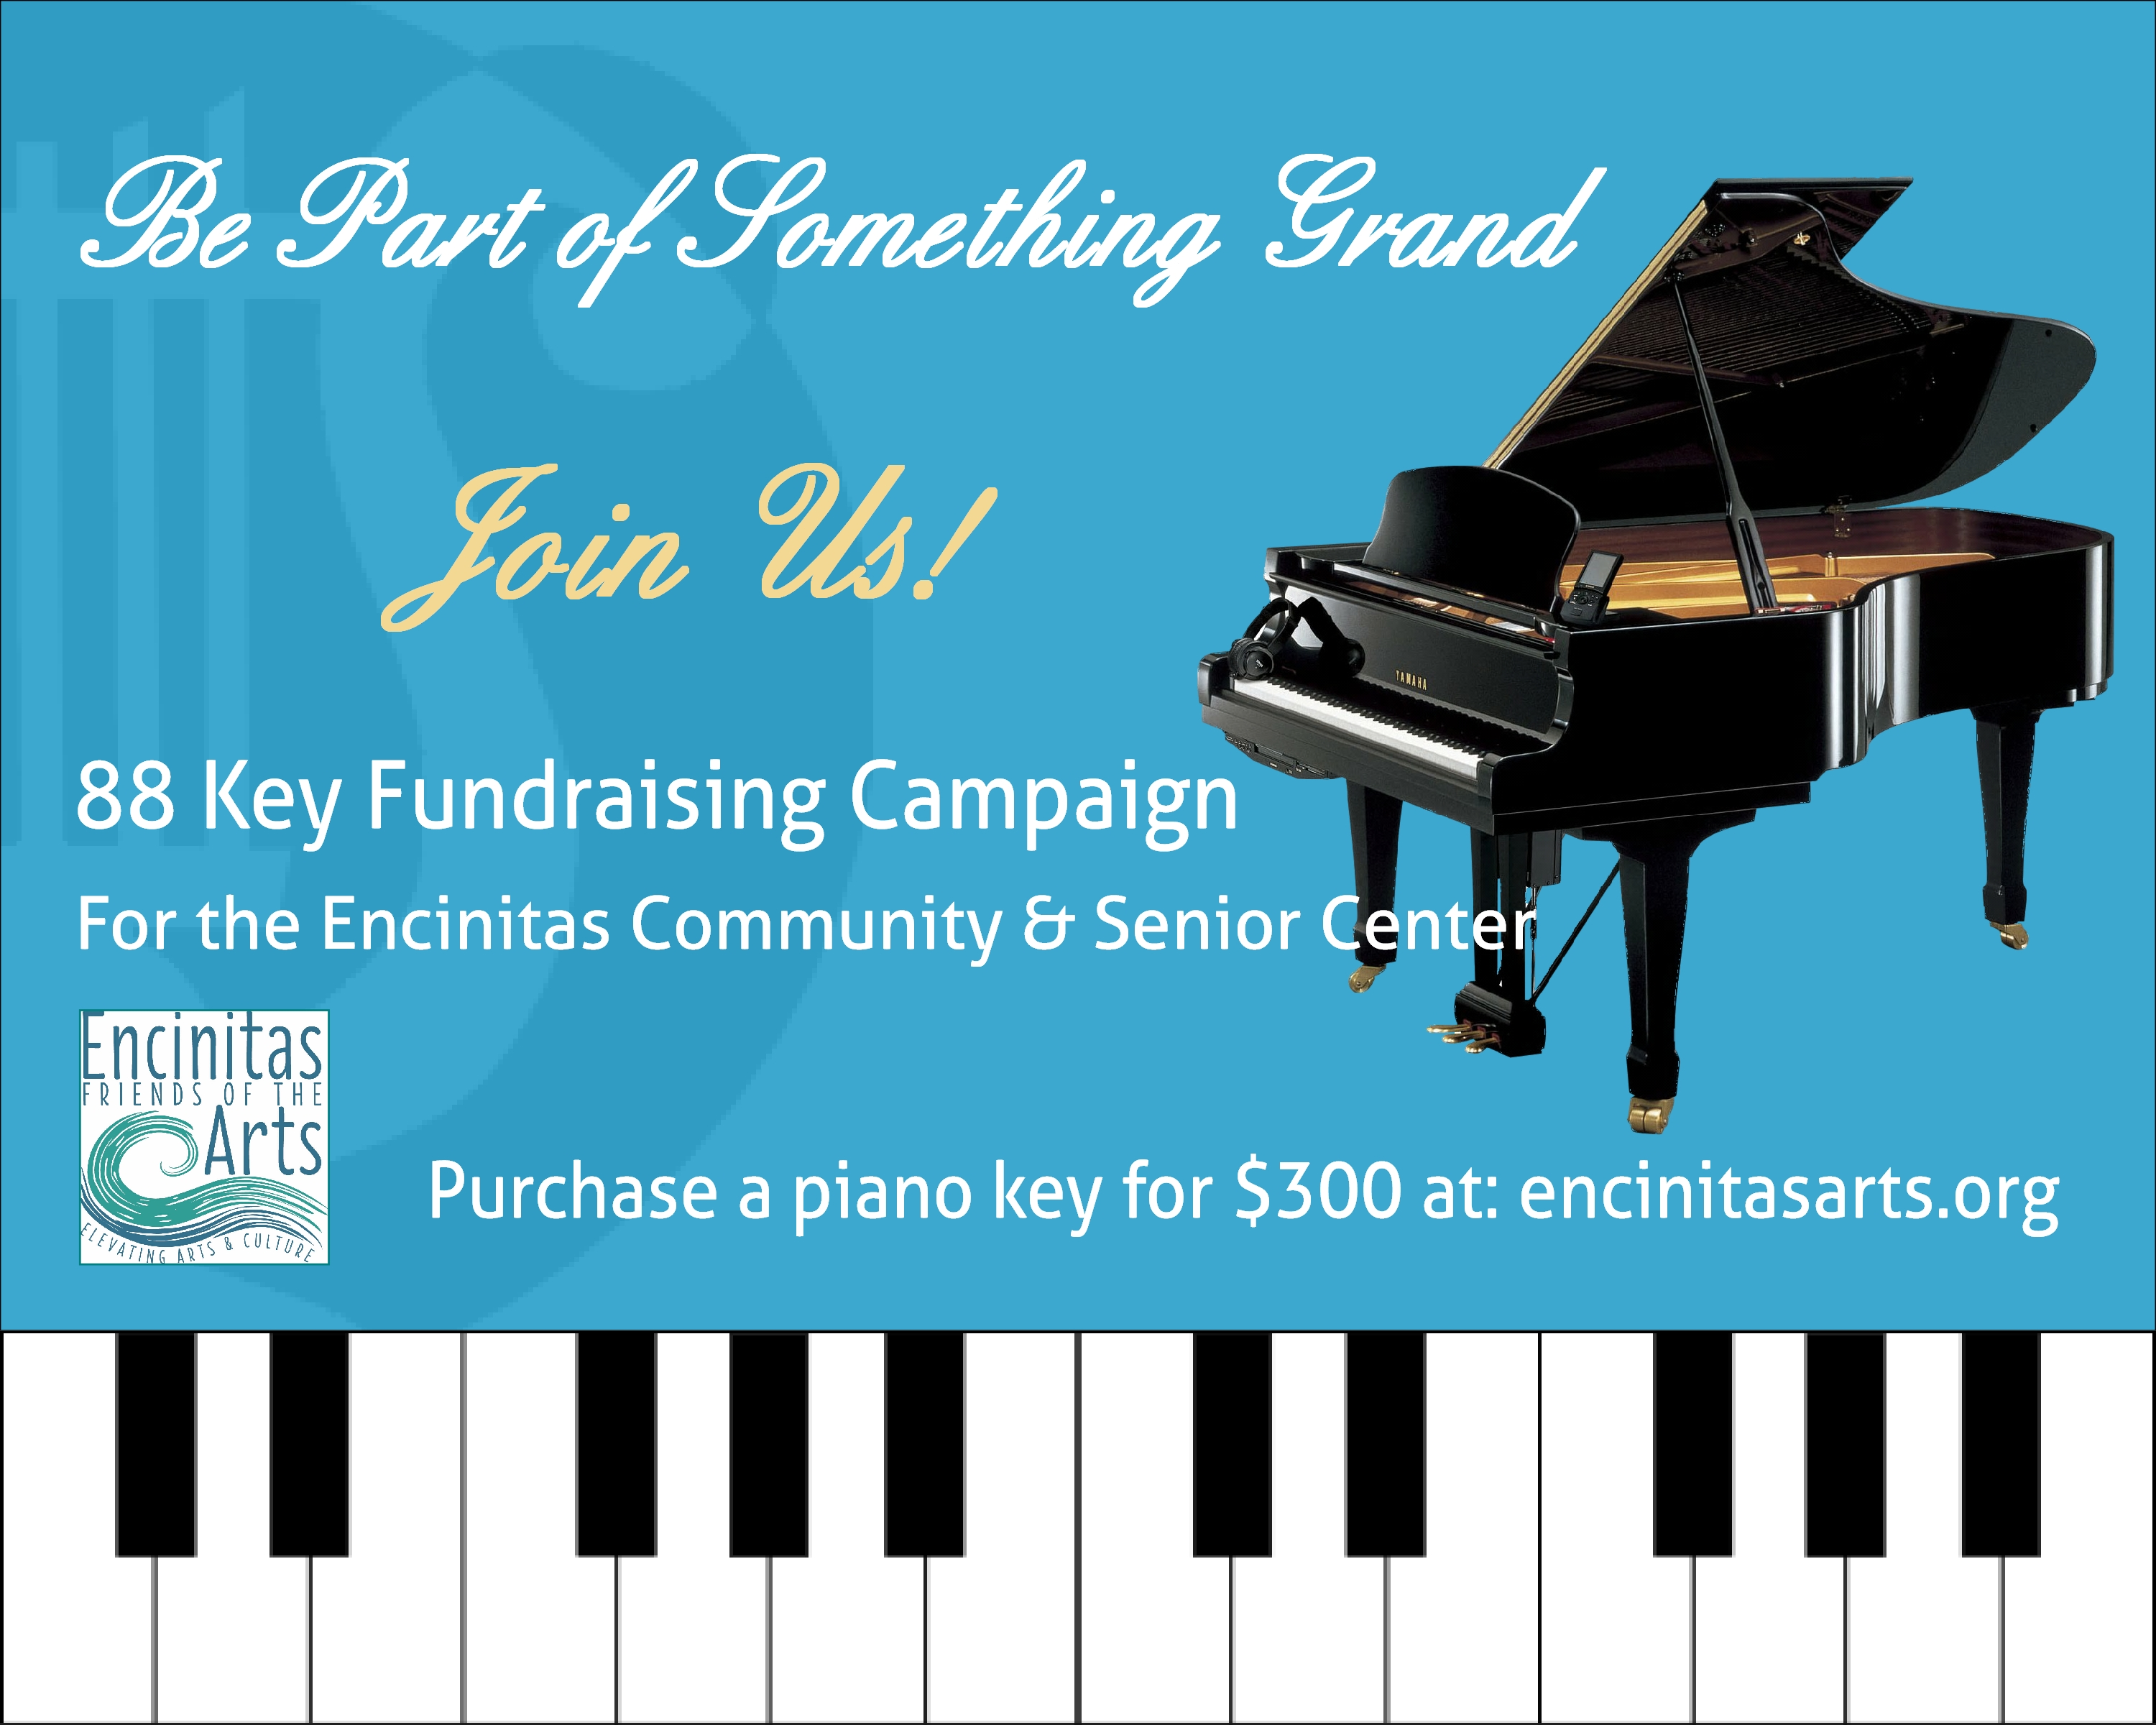 News Release: Encinitas Friends of the Arts Launches Piano Campaign